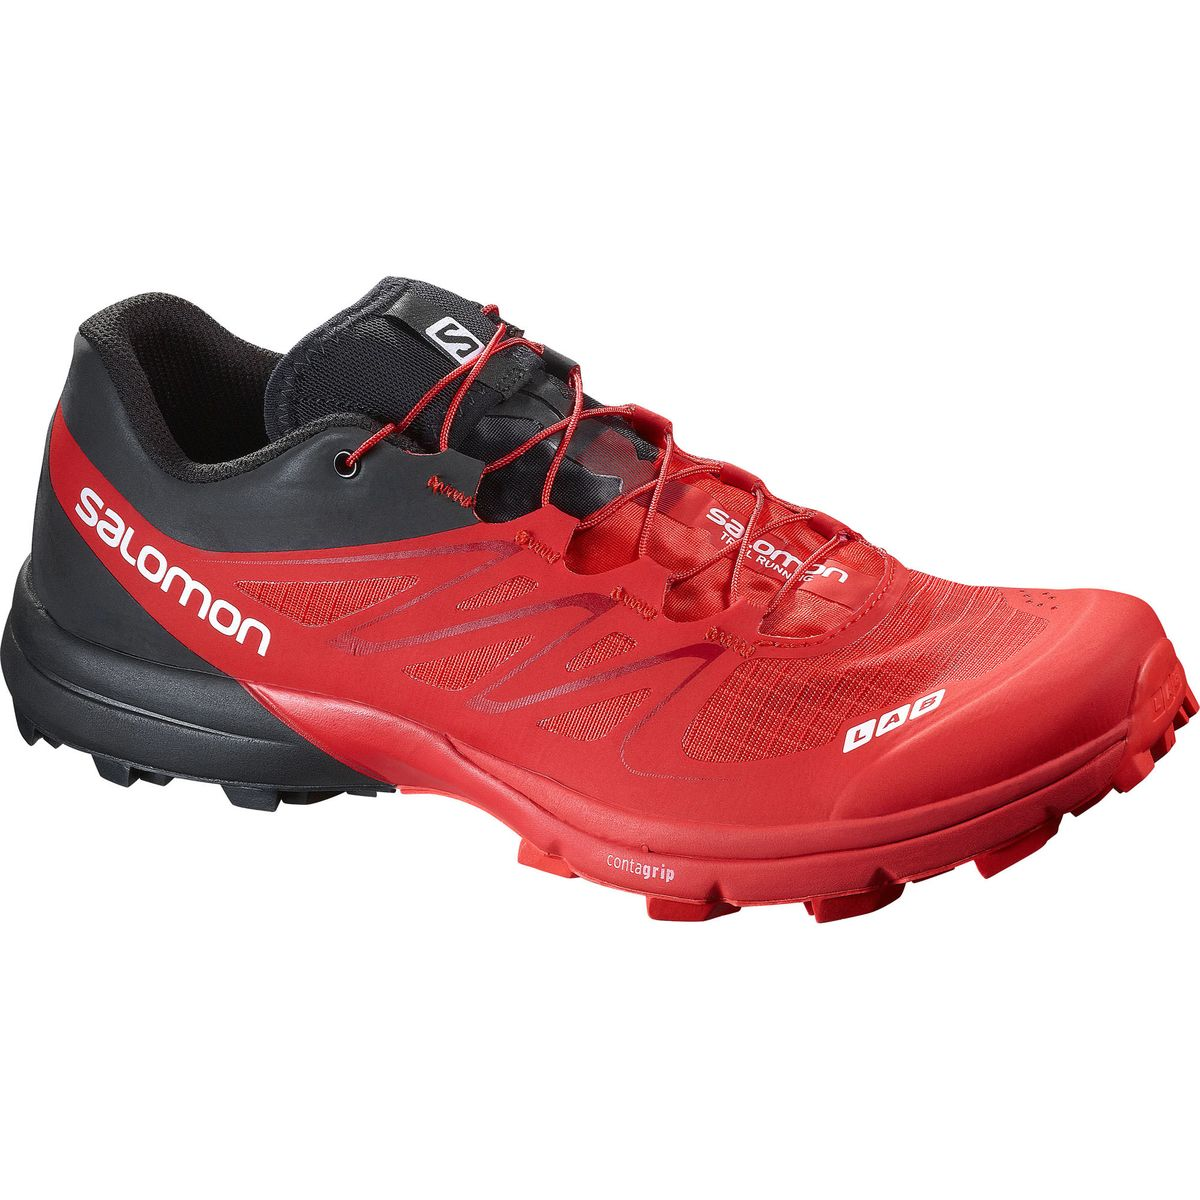 salomon shoes philippines sale used car